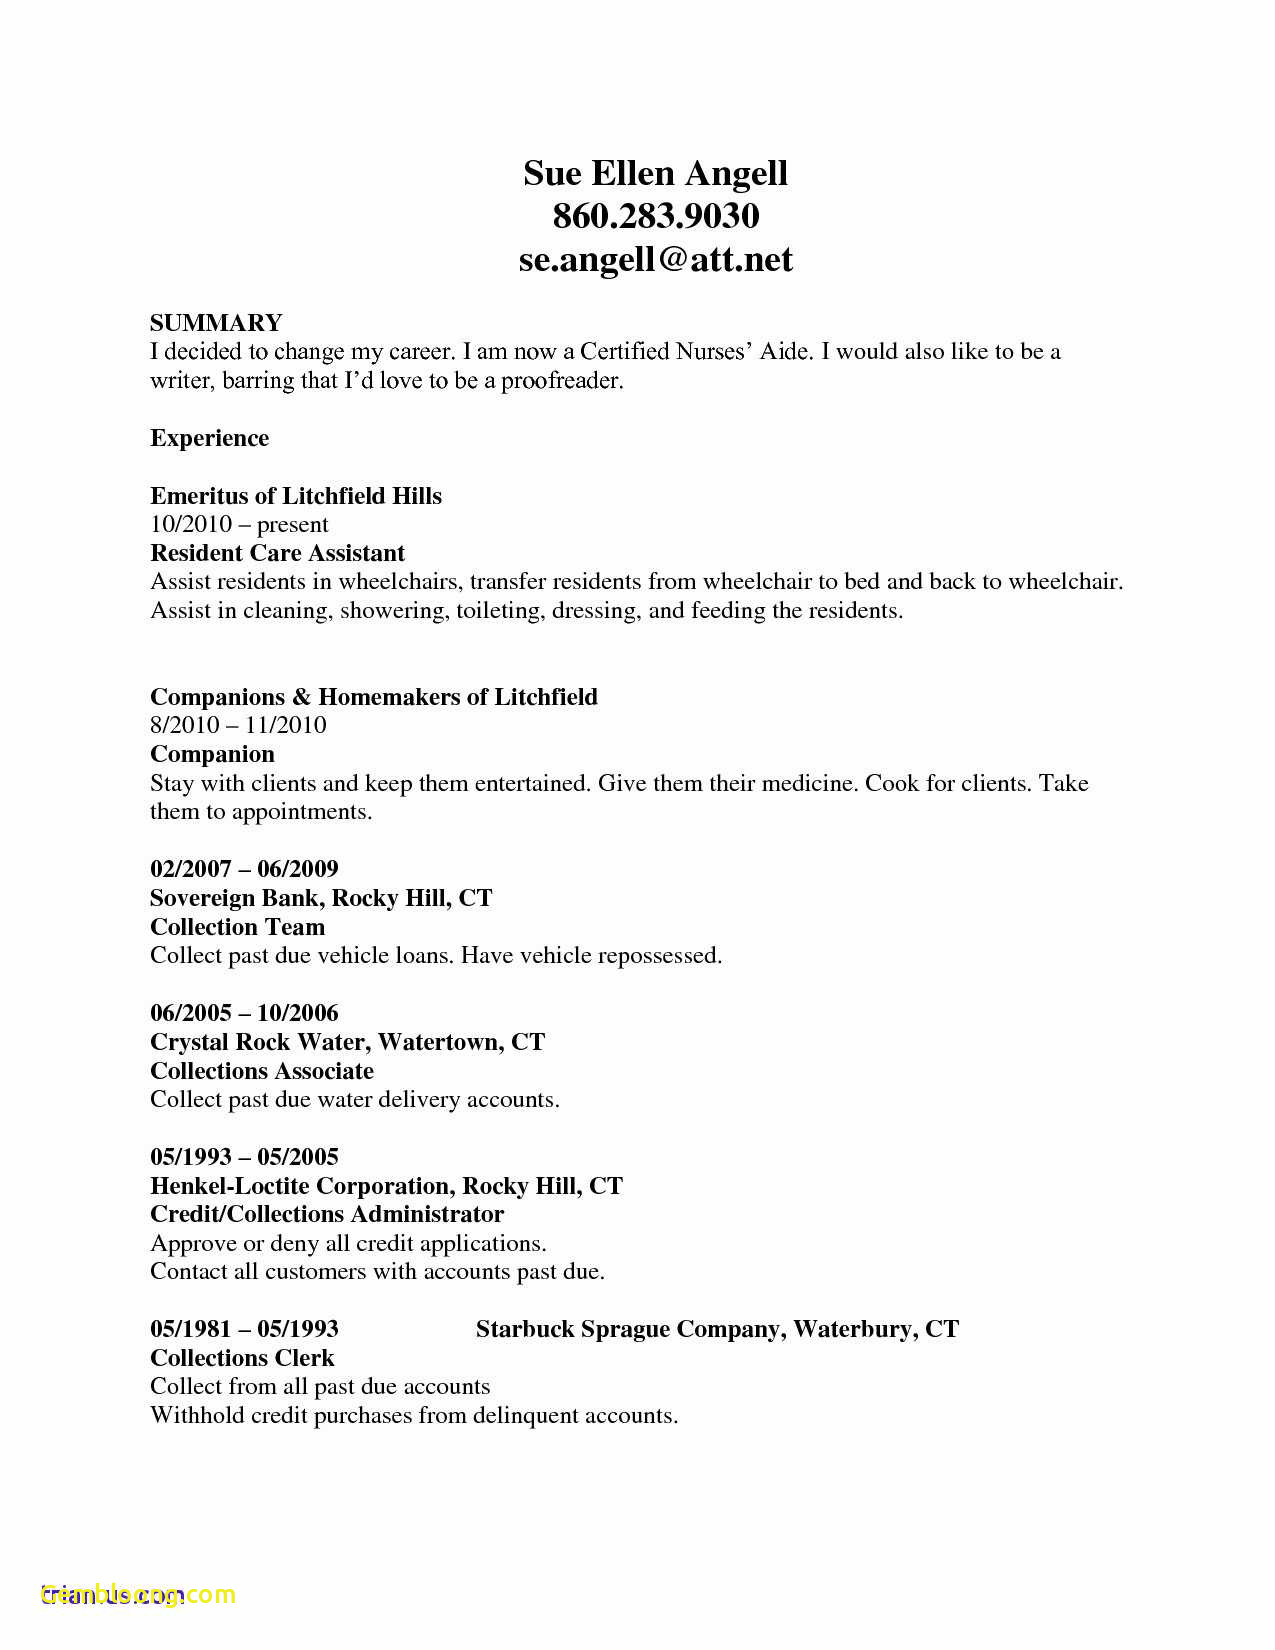 Nurse Resume Template Free Download - Download Lovely Resume Examples Cna